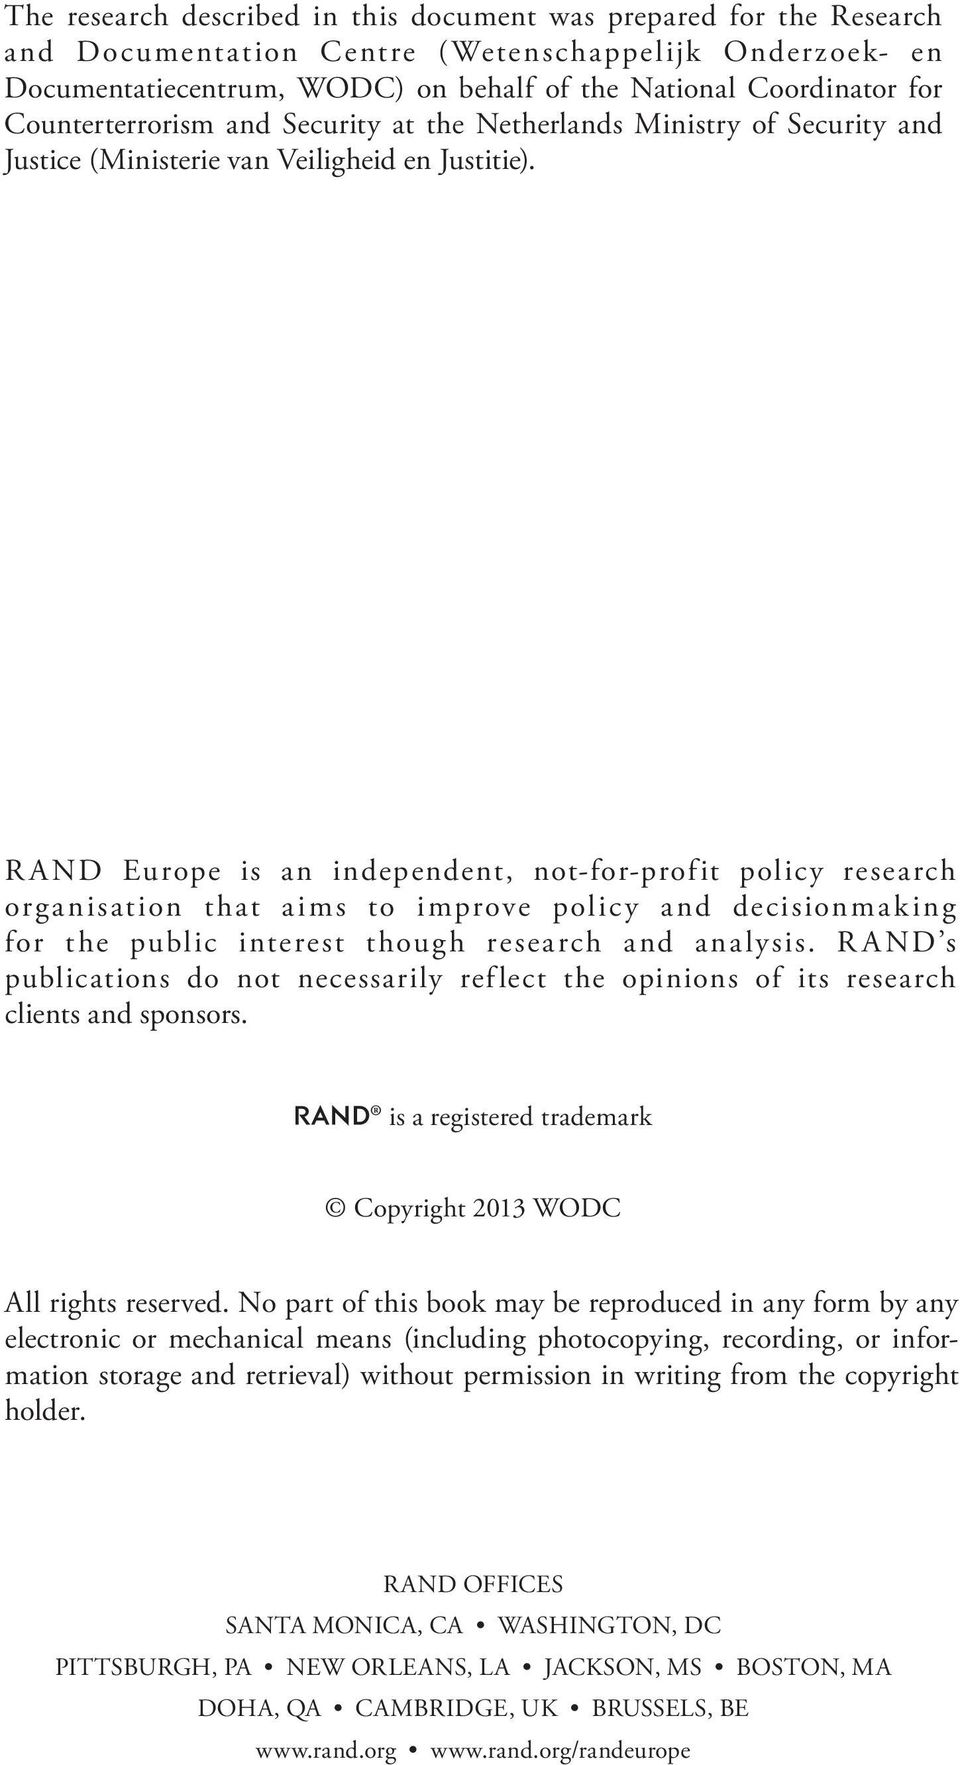 RAND Europe is an independent, not-for-profit policy research organisation that aims to improve policy and decisionmaking for the public interest though research and analysis.